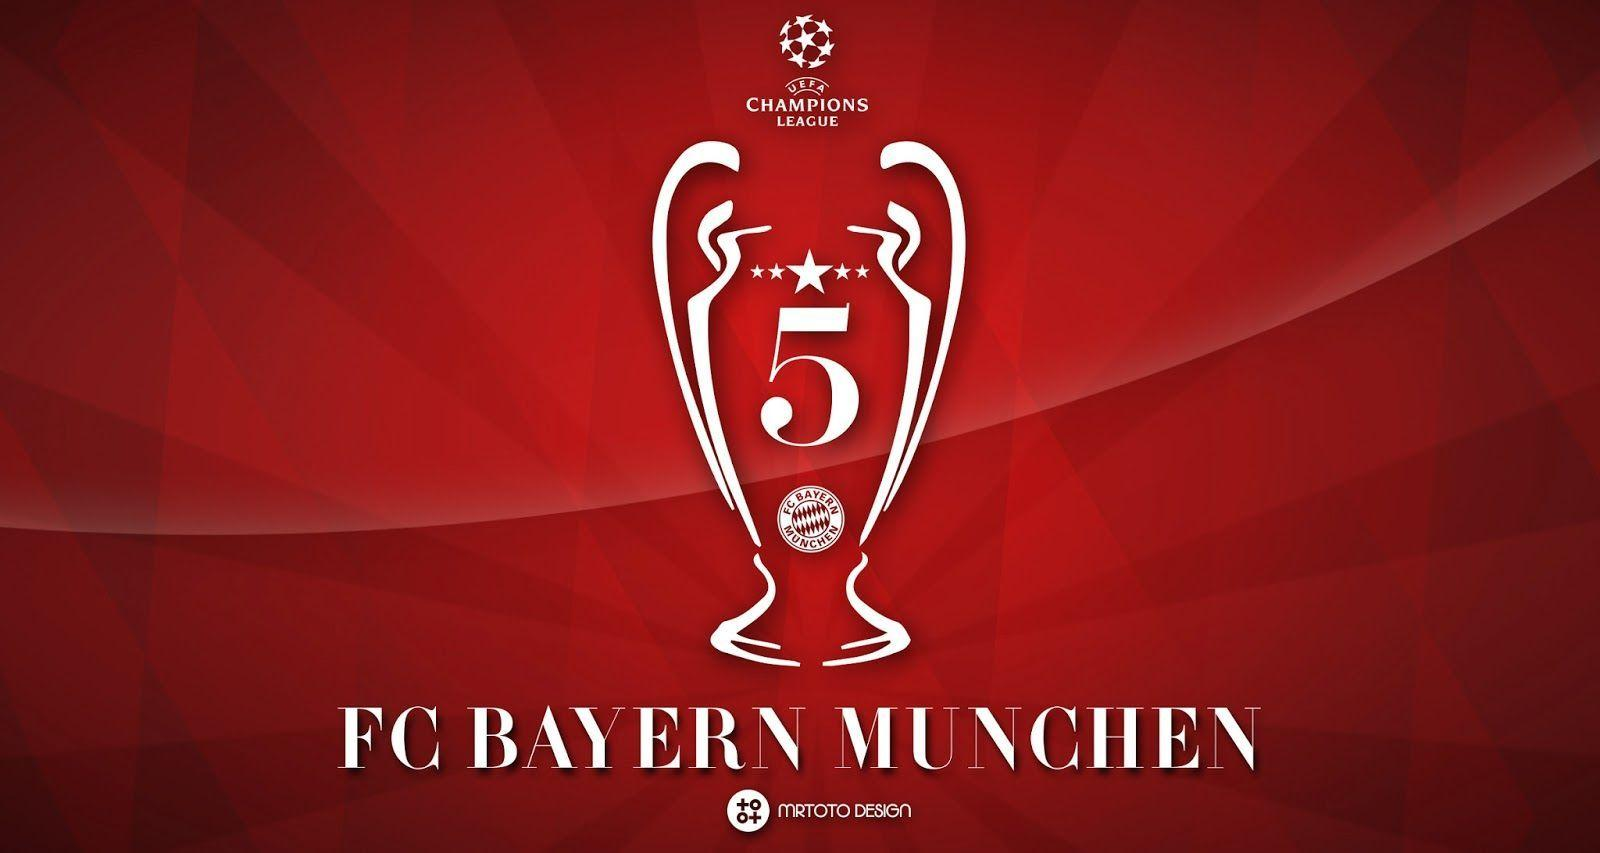 Fc bayern munich hd wallpapers wallpaper cave fc bayern munich hd wallpaper 1600853 high definition wallpaper voltagebd Image collections